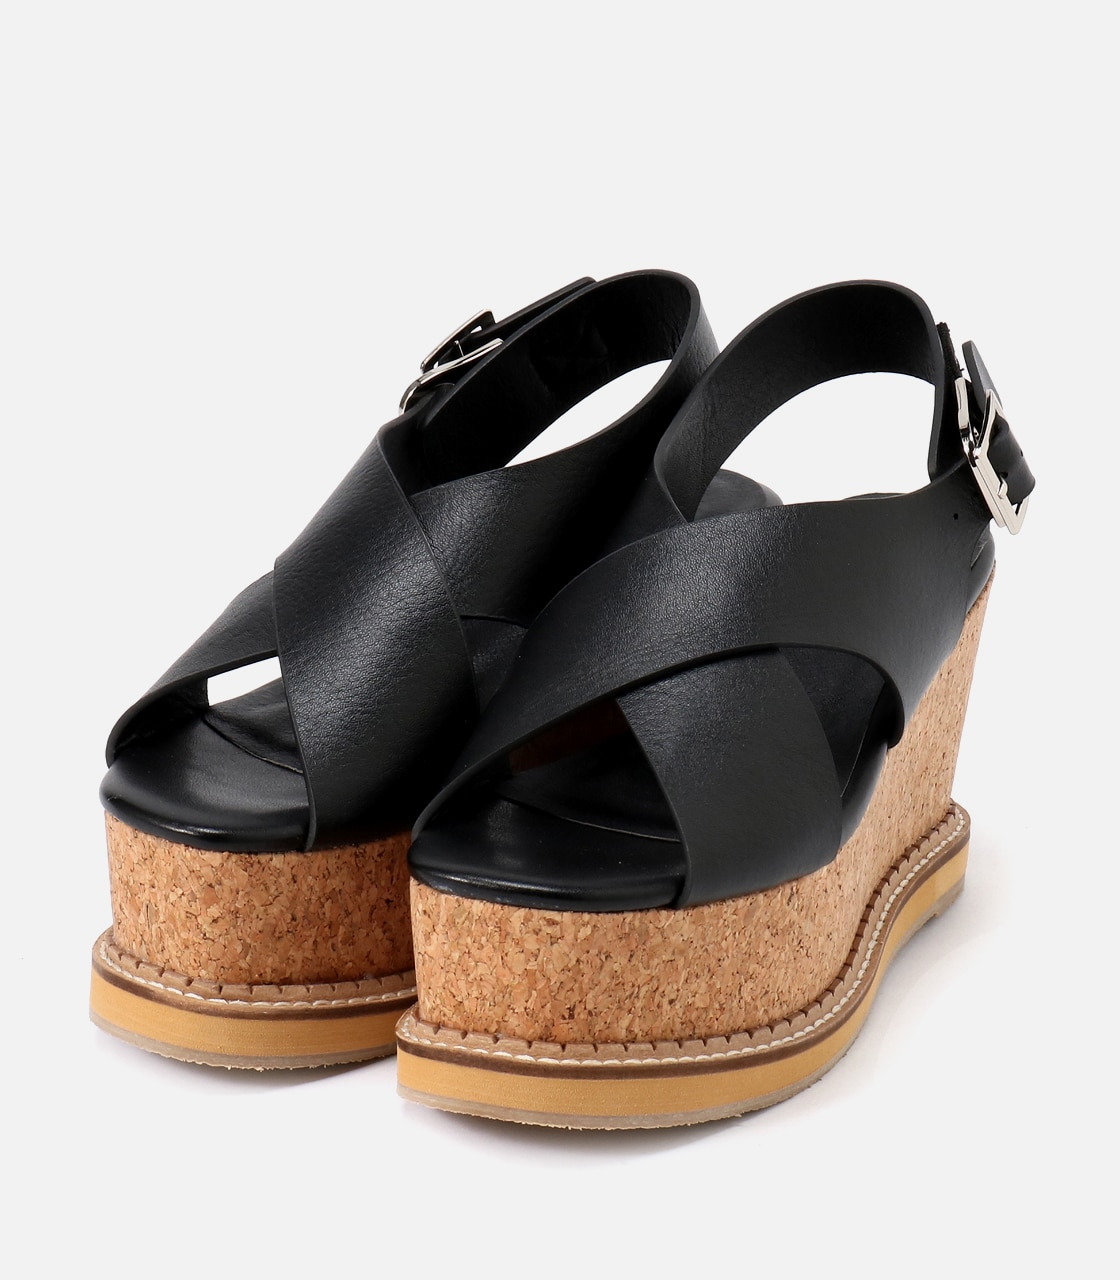 【AZUL BY MOUSSY】CORKHEEL WEDGE SANDALS